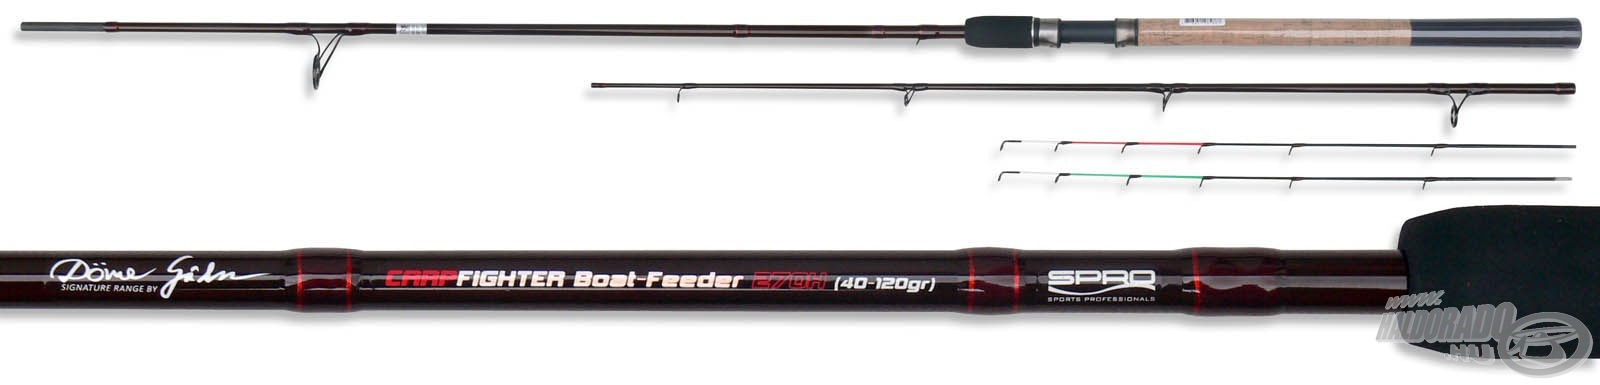 SPRO, Team, Feeder, Carp, Fighter, Boat, -, by, D�me, G�bor, 12990Ft-t�l